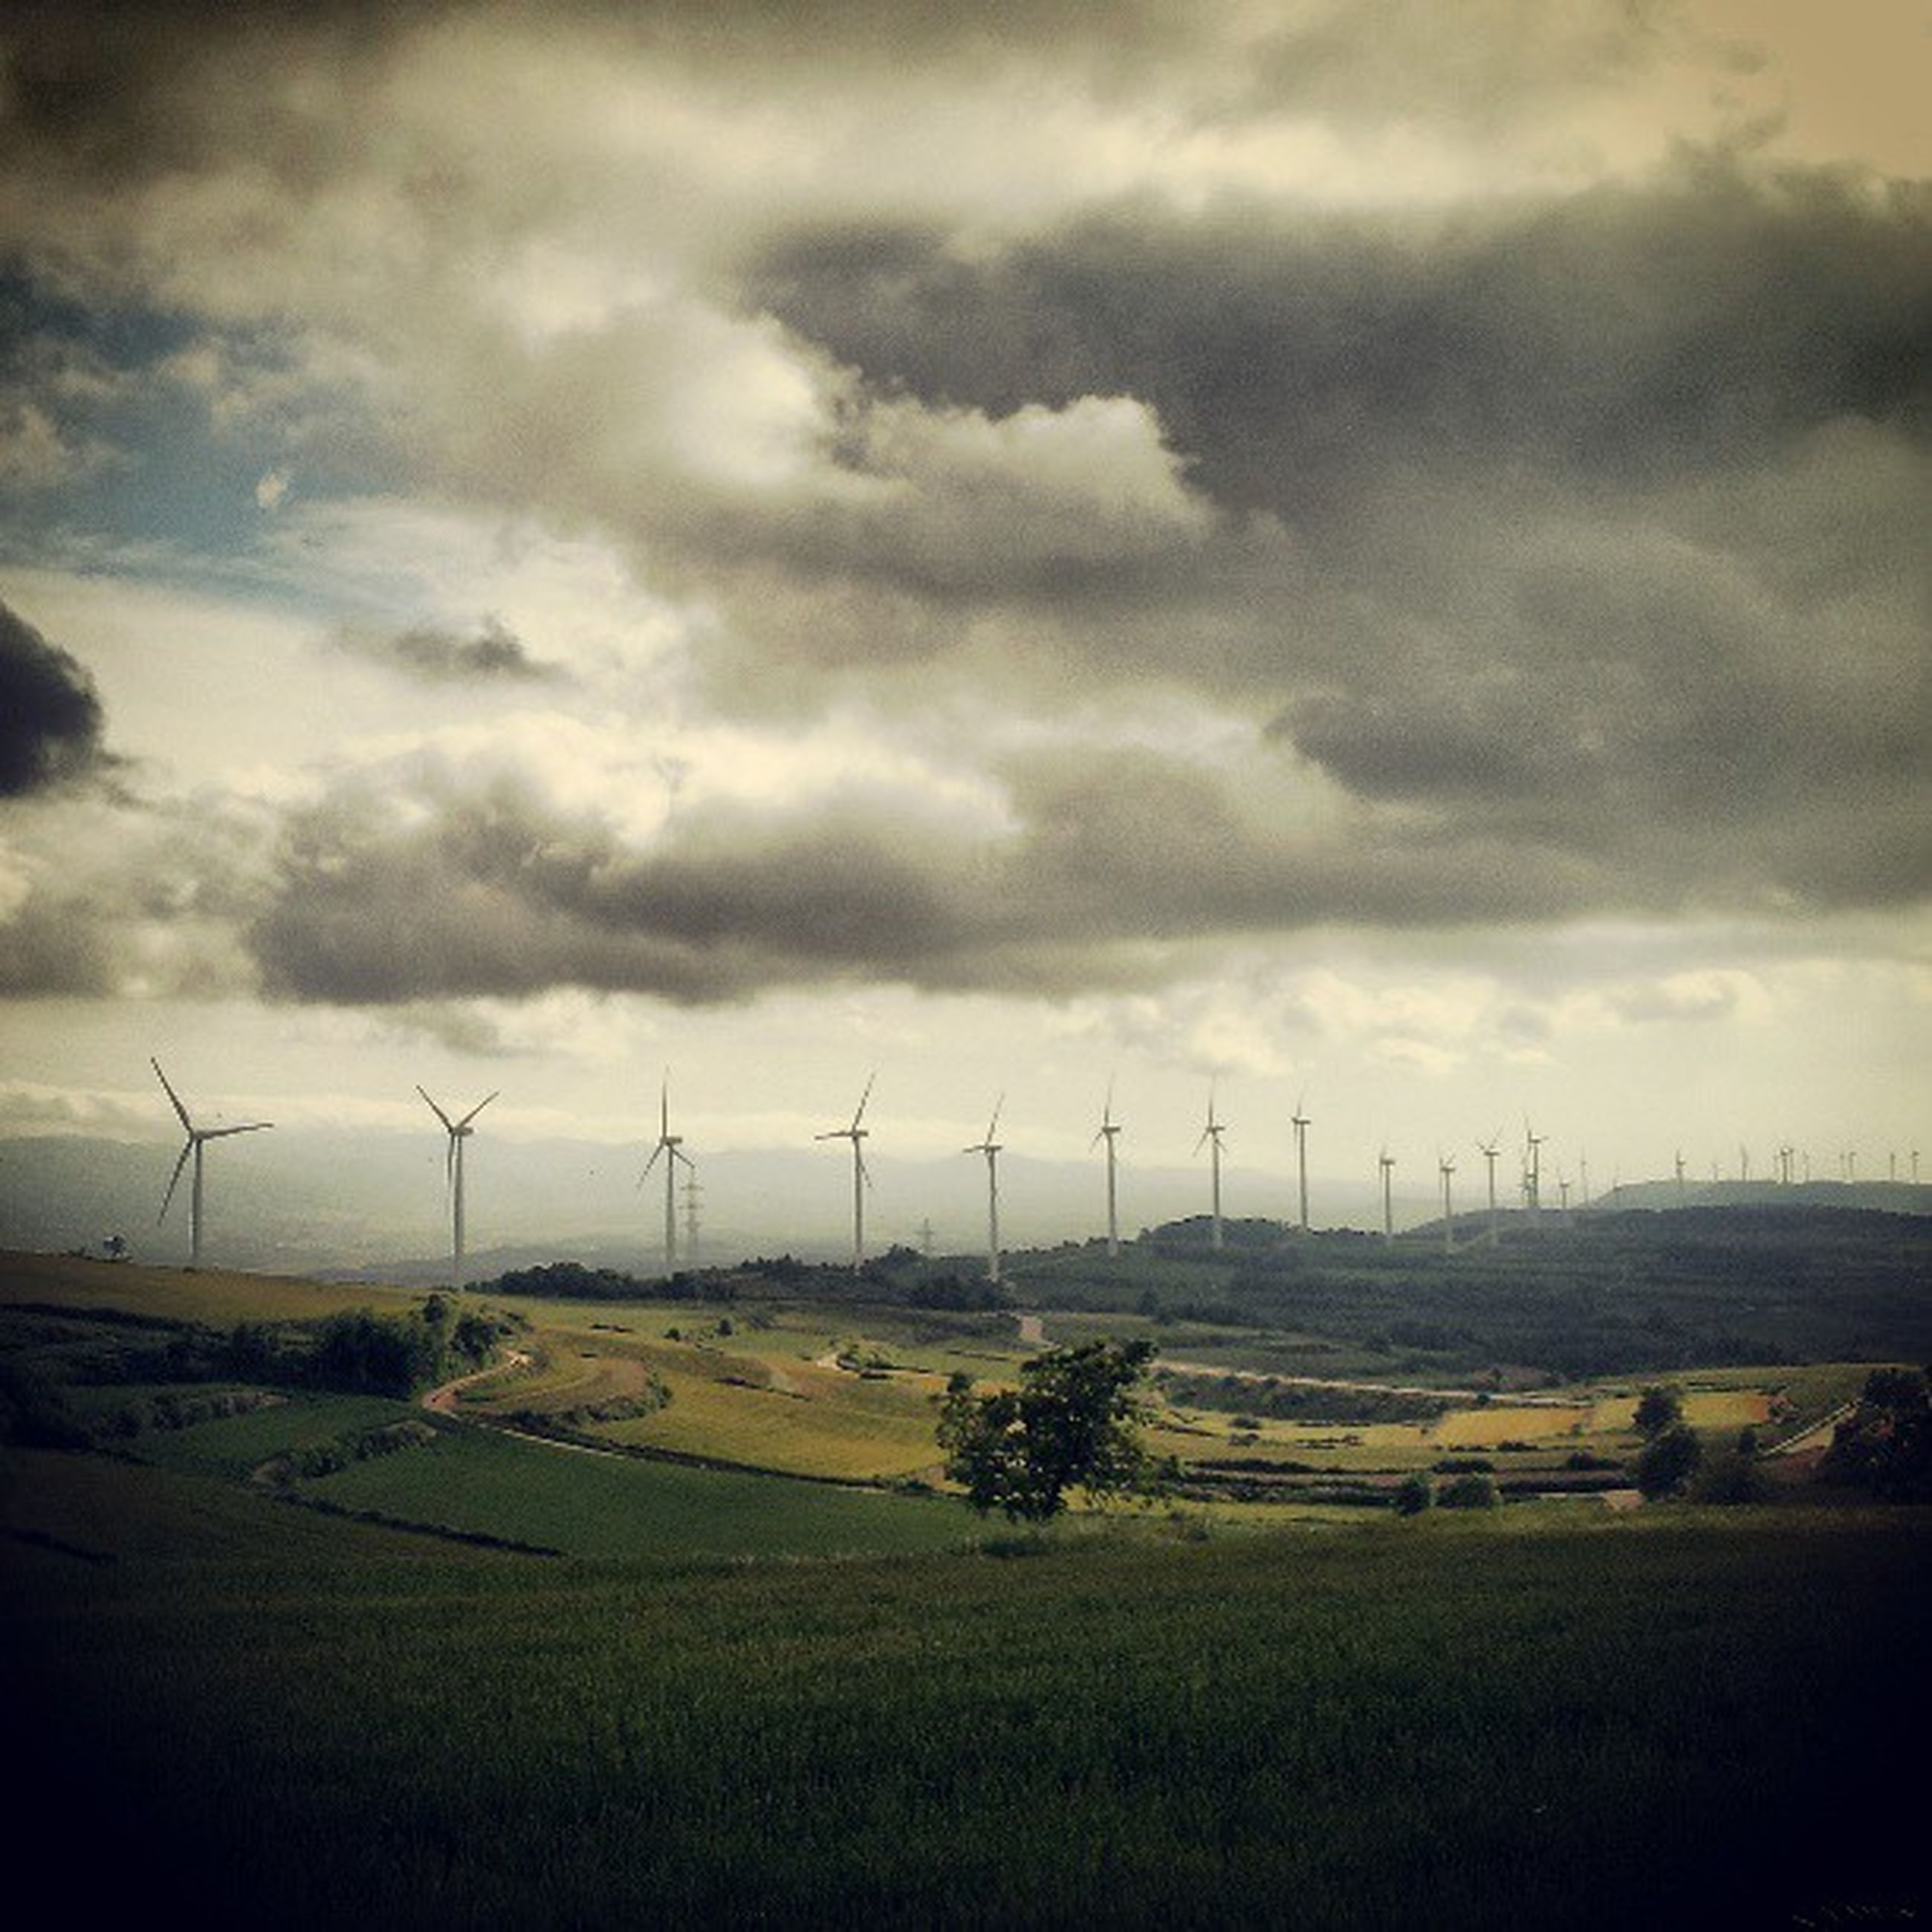 wind turbine, wind power, field, alternative energy, landscape, windmill, fuel and power generation, rural scene, environmental conservation, renewable energy, sky, agriculture, cloud - sky, farm, grass, cloudy, tranquil scene, nature, tranquility, technology